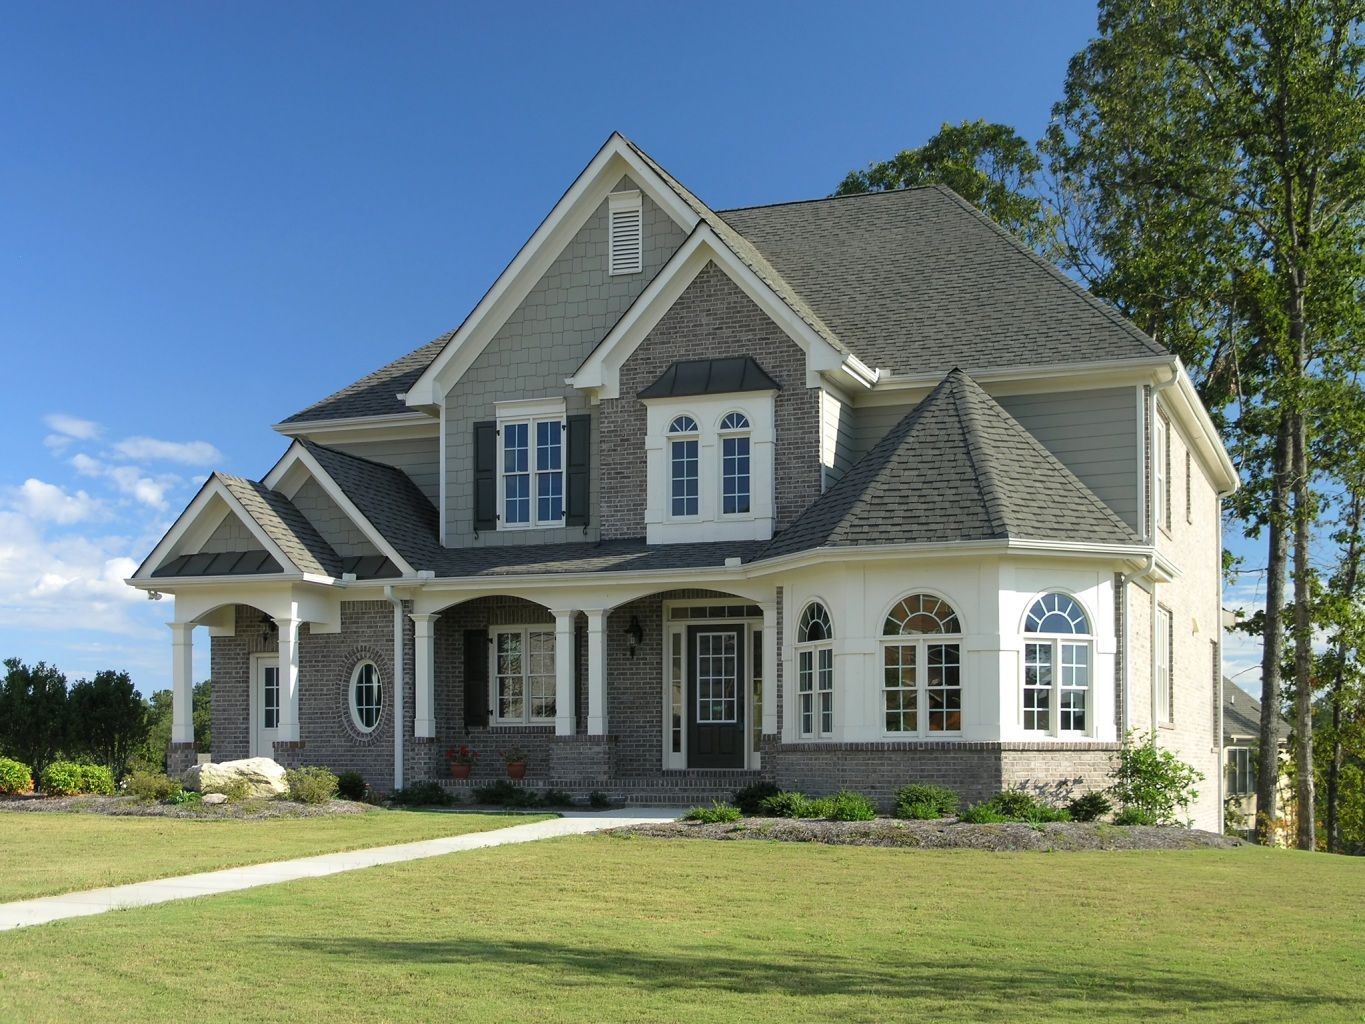 Explore Luxury Homes Exterior And More!